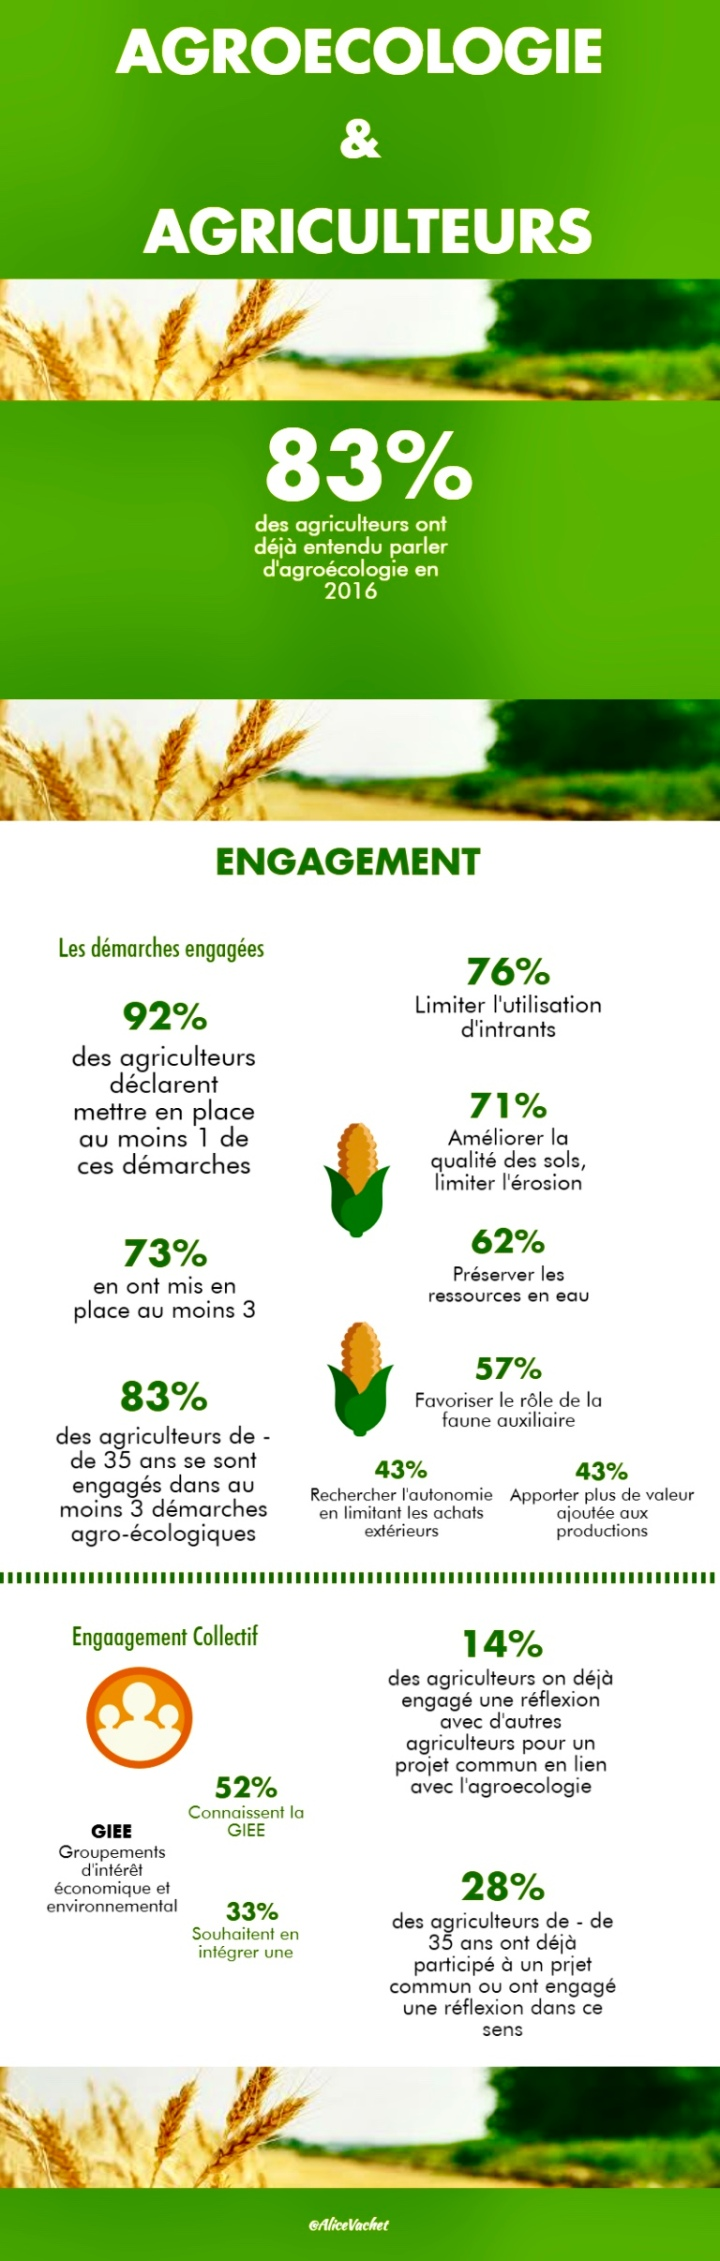 [Infographie] Agroécologie & Agriculteurs 🌾